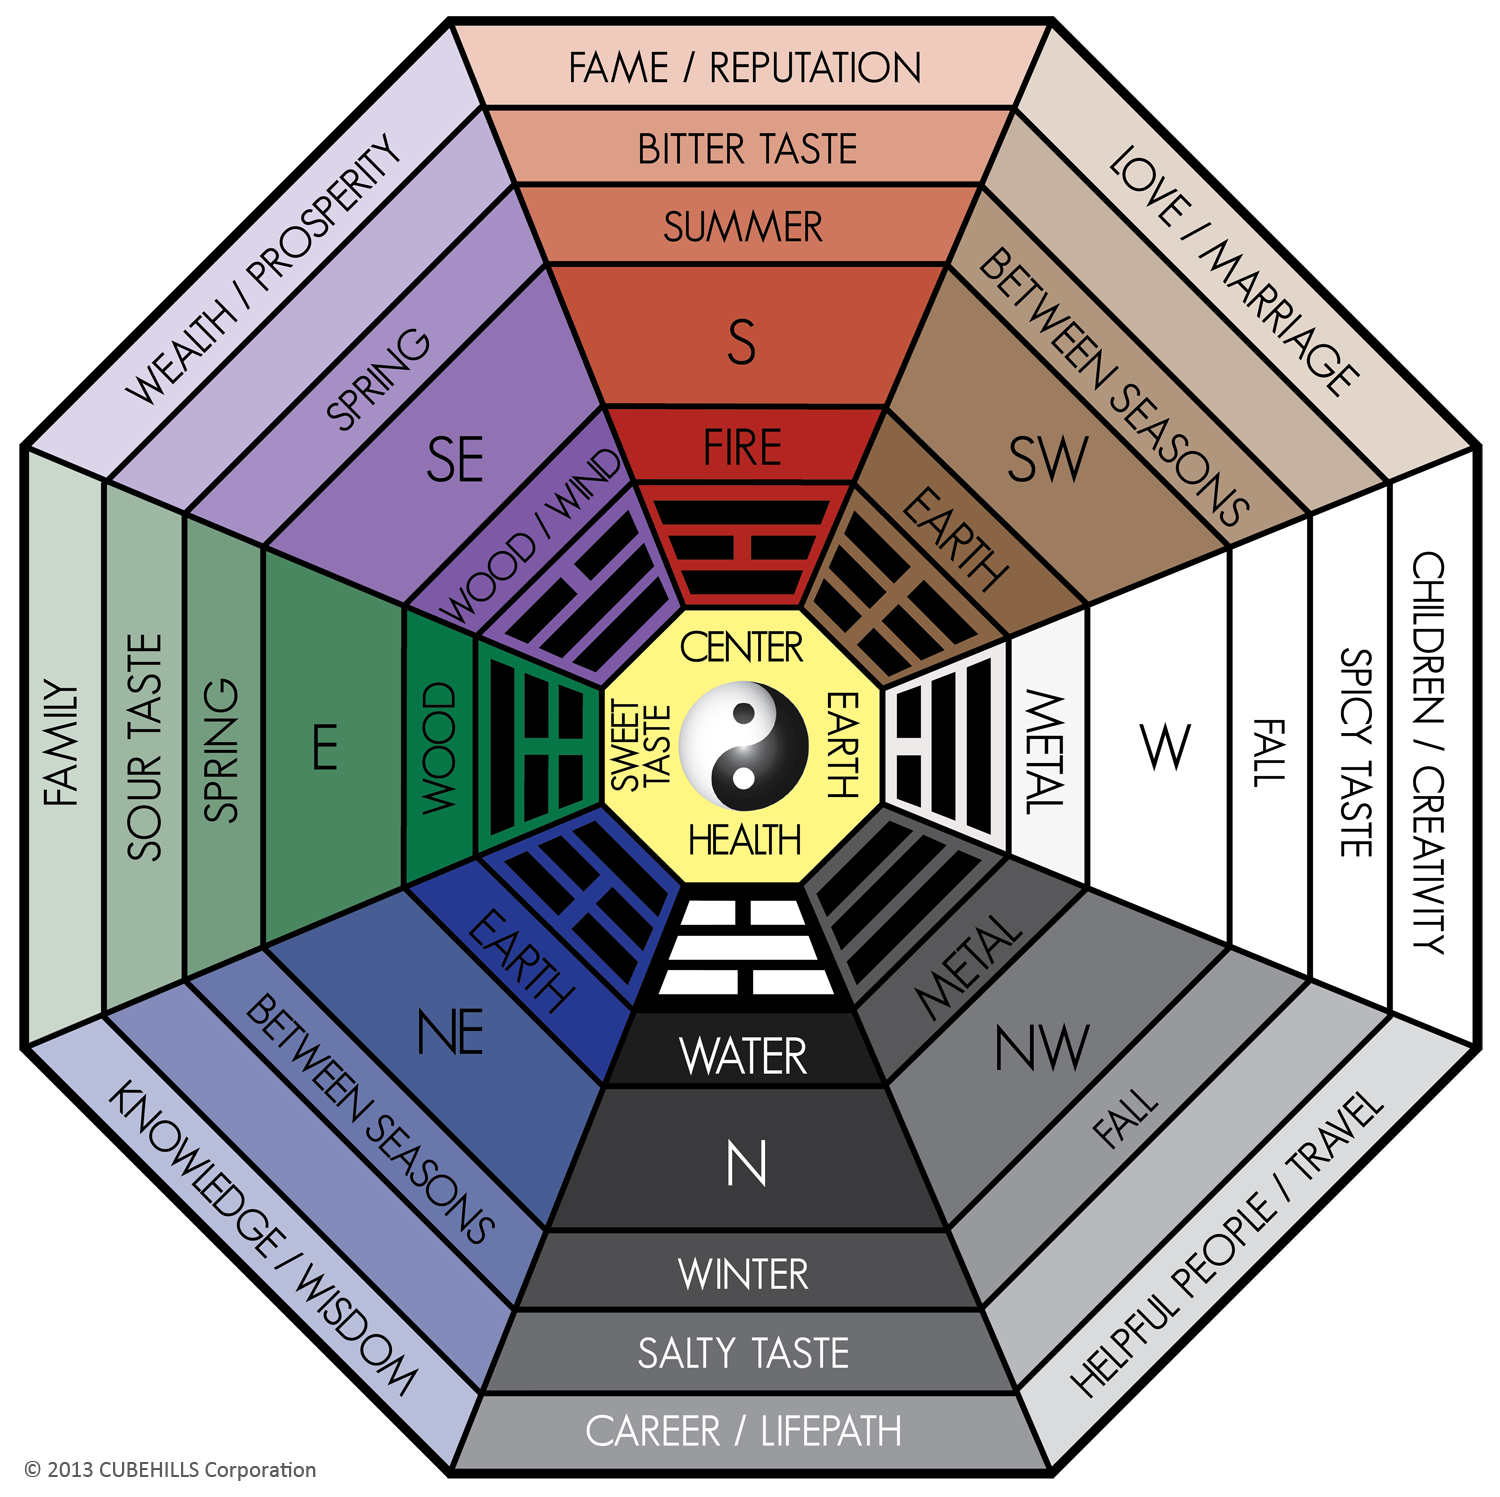 Classical Feng Shui Bagua Video All About The Classical Feng Shui Bagua Home Or Office